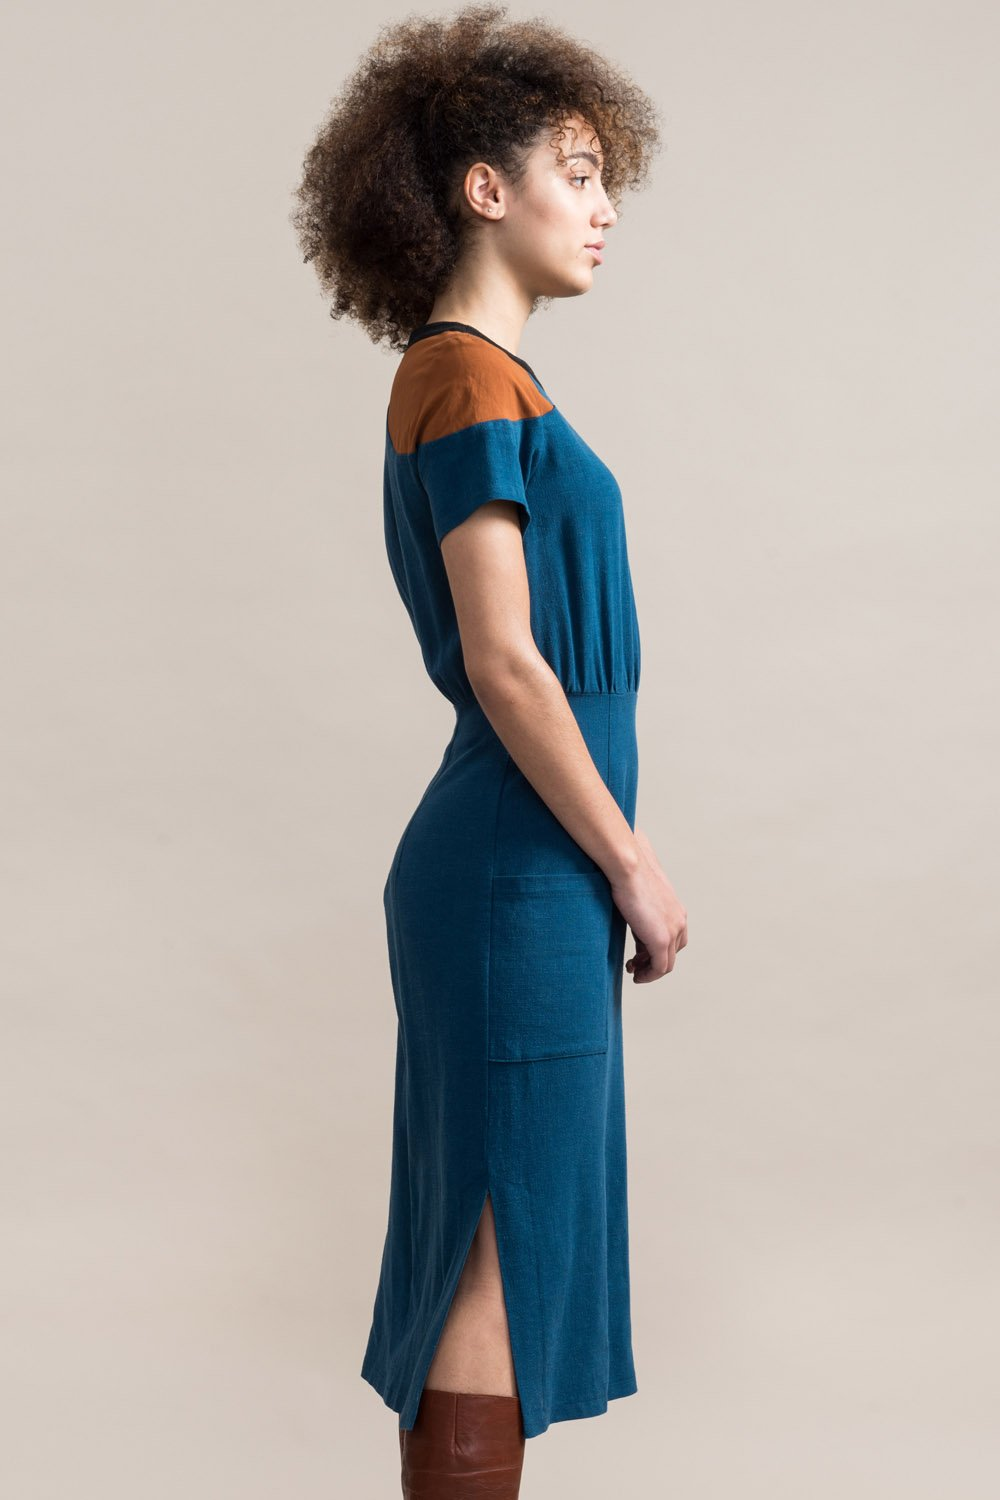 JENNIFER GLASGOW Cherish Dress in Teal FW2020/2021 (side view, detail)